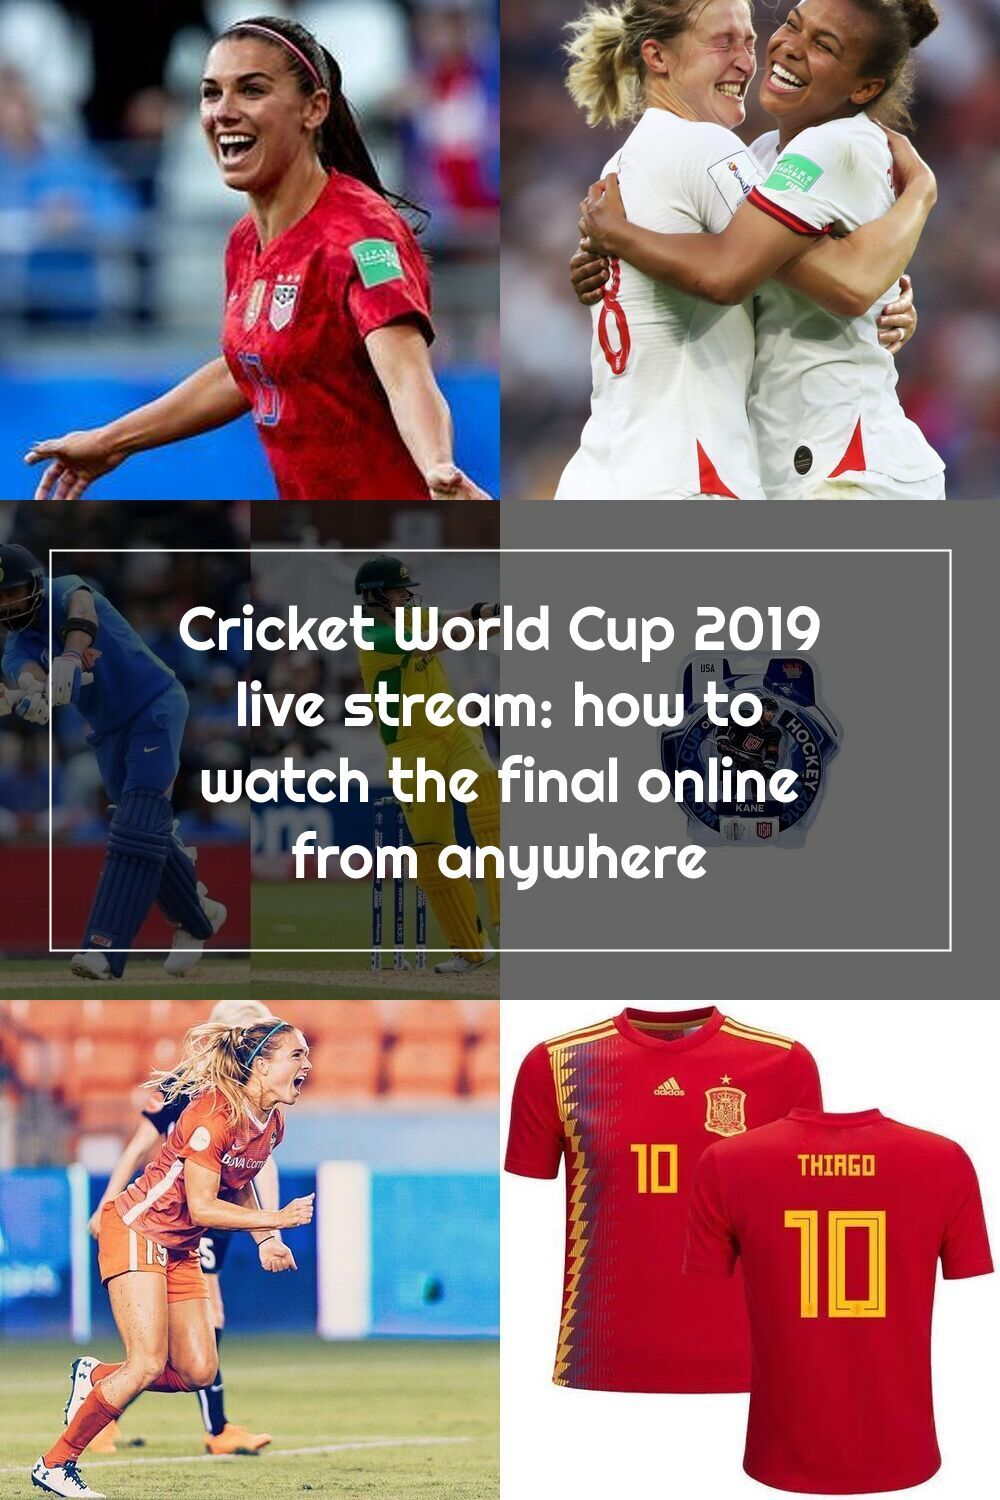 India Vs Australia Live Stream How To Watch Today S Cricket World Cup 2019 Match From Anywhere